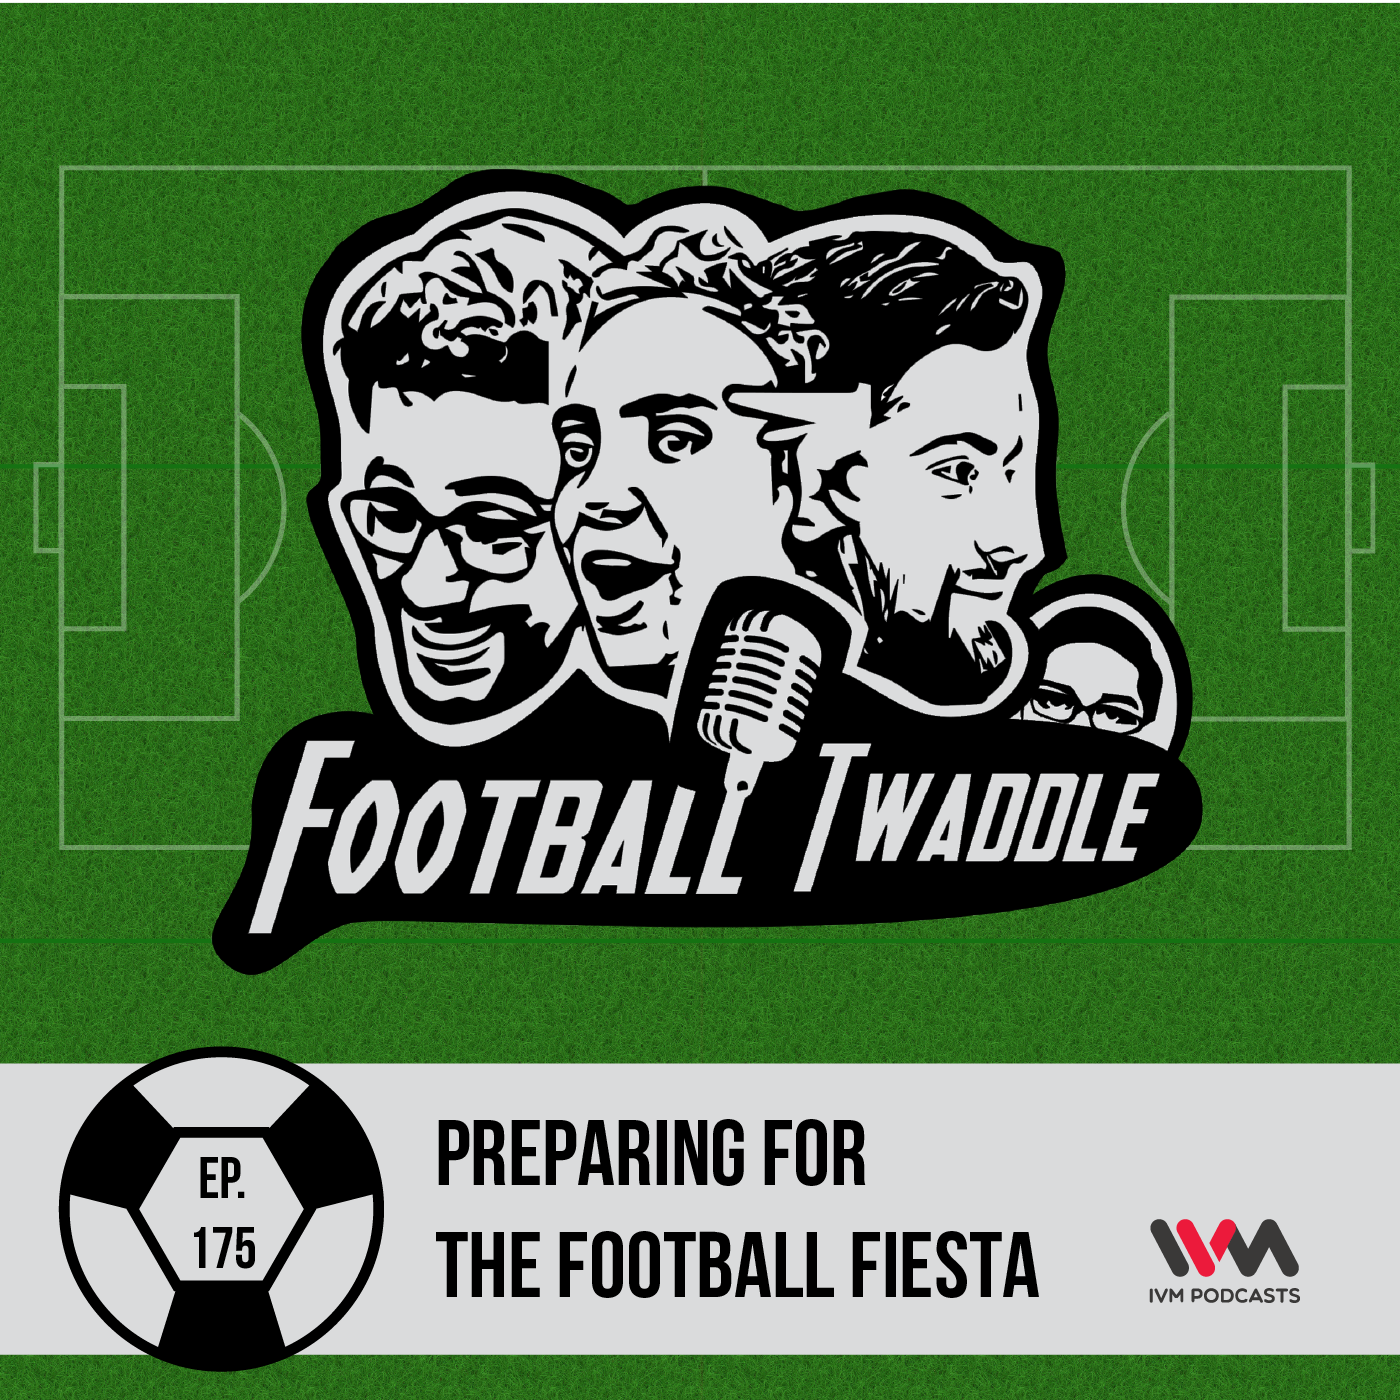 Preparing for the Football Fiesta